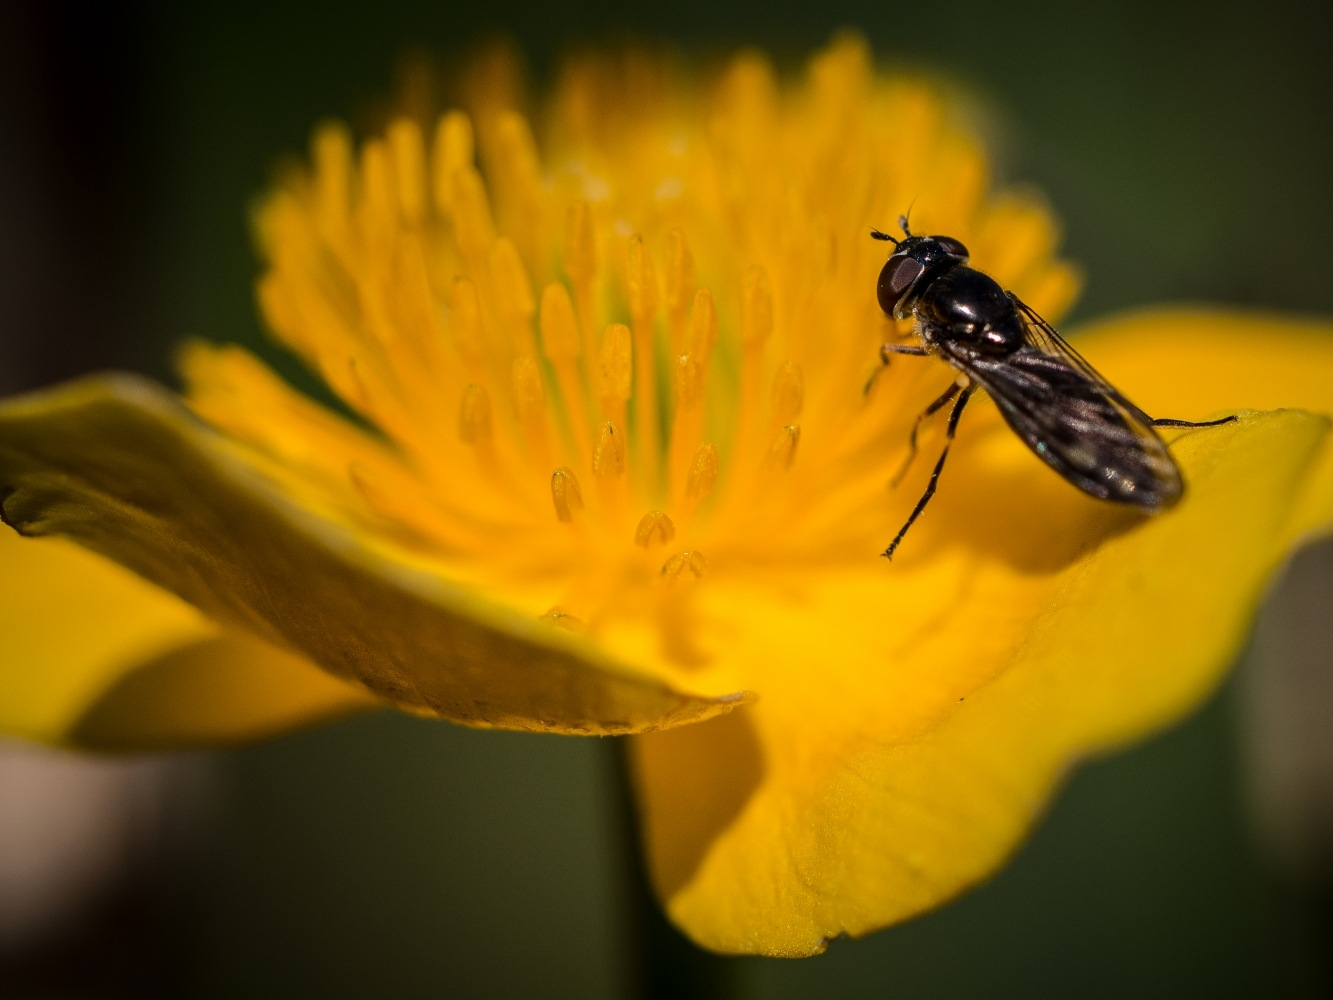 Fly on flower by draycottphotography